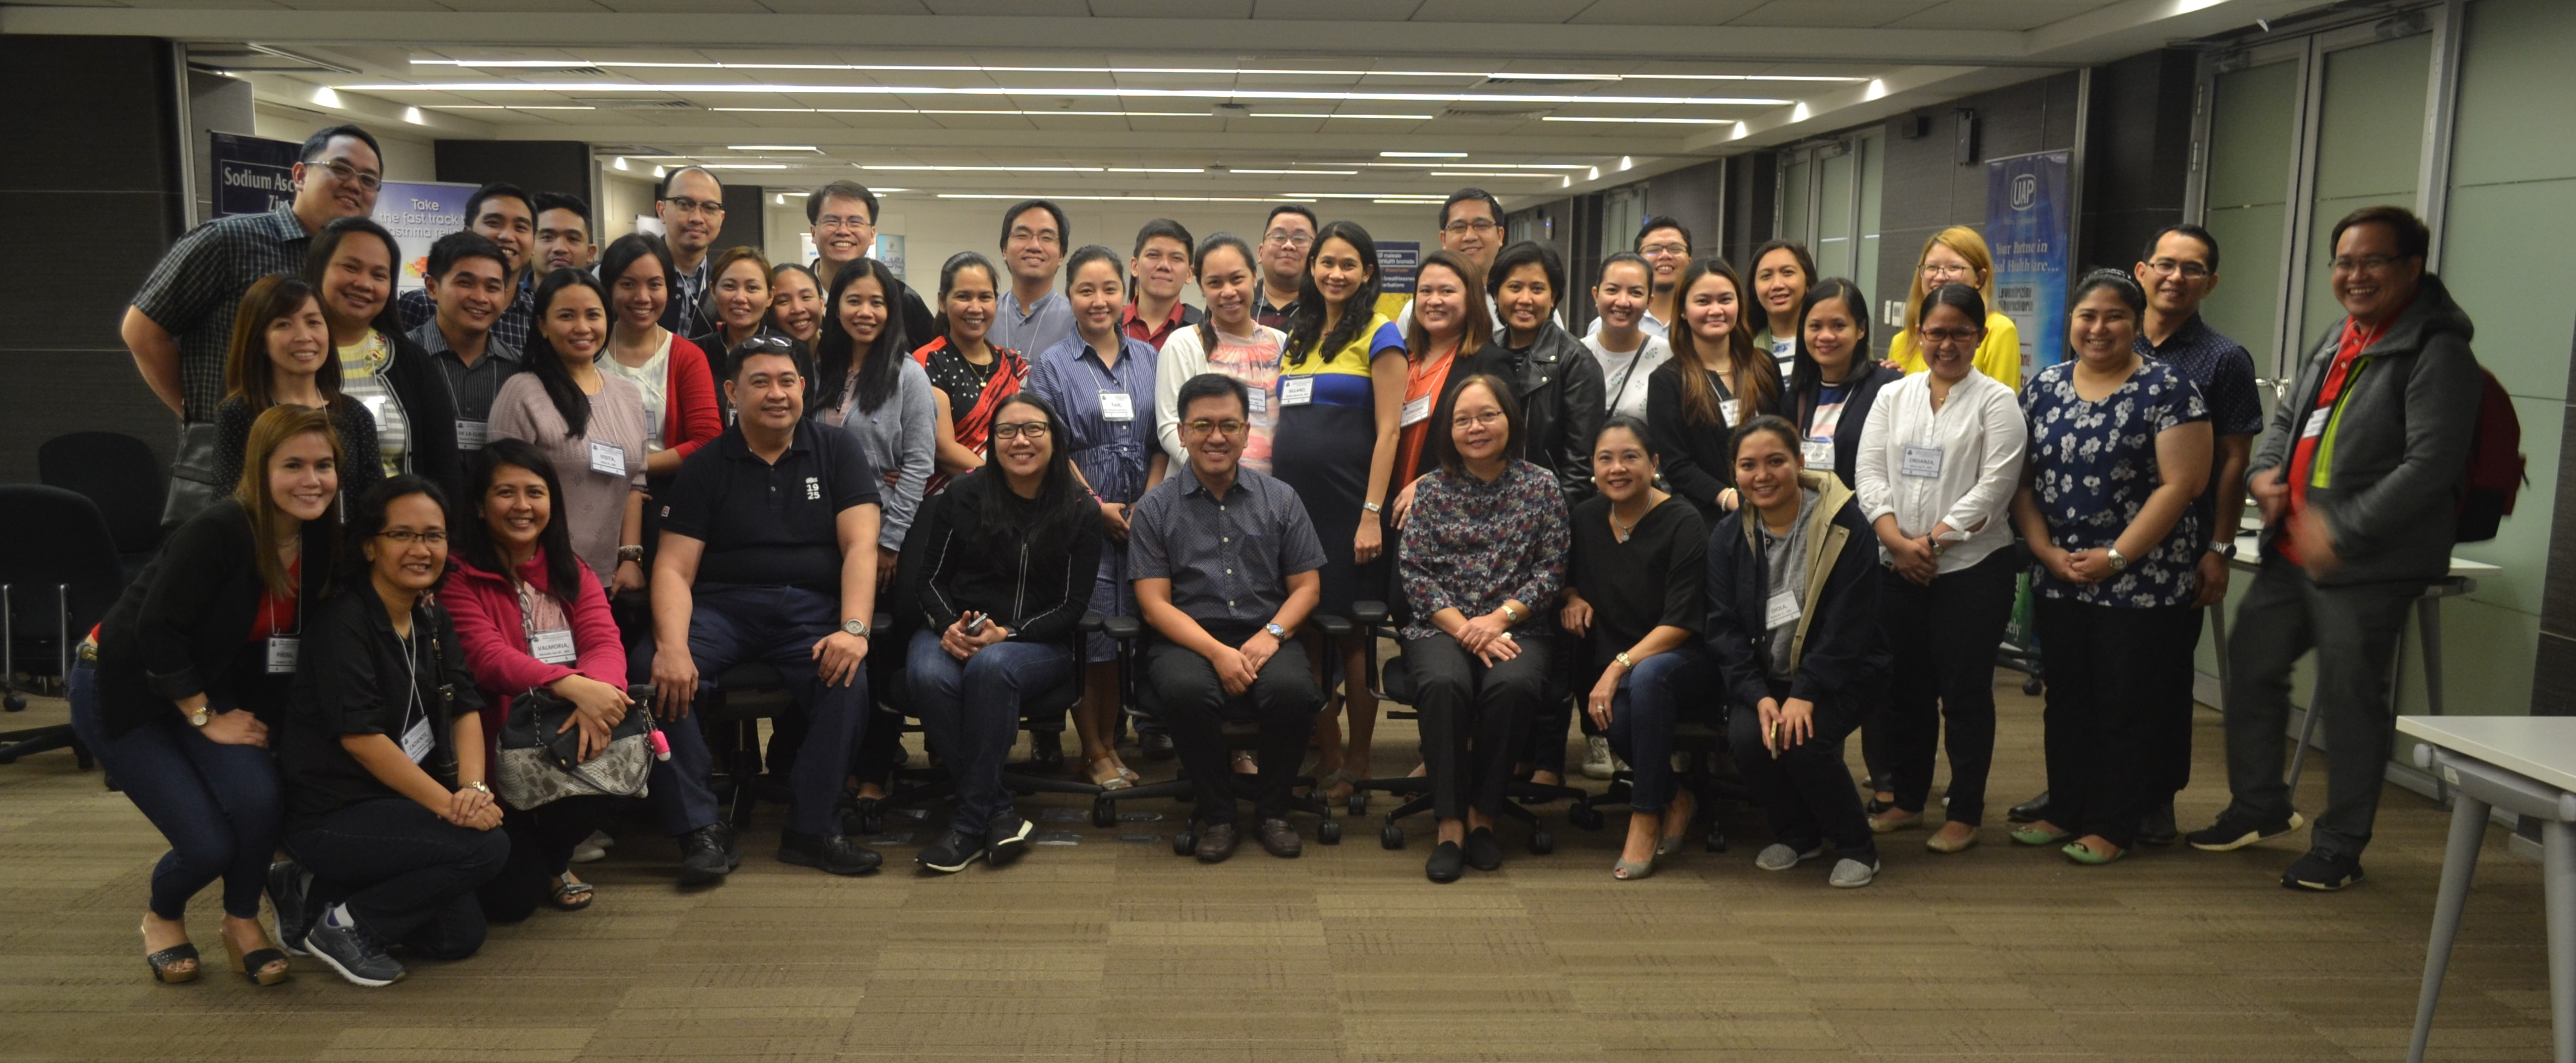 2018 New Diplomates with the PCCP Specialty Board